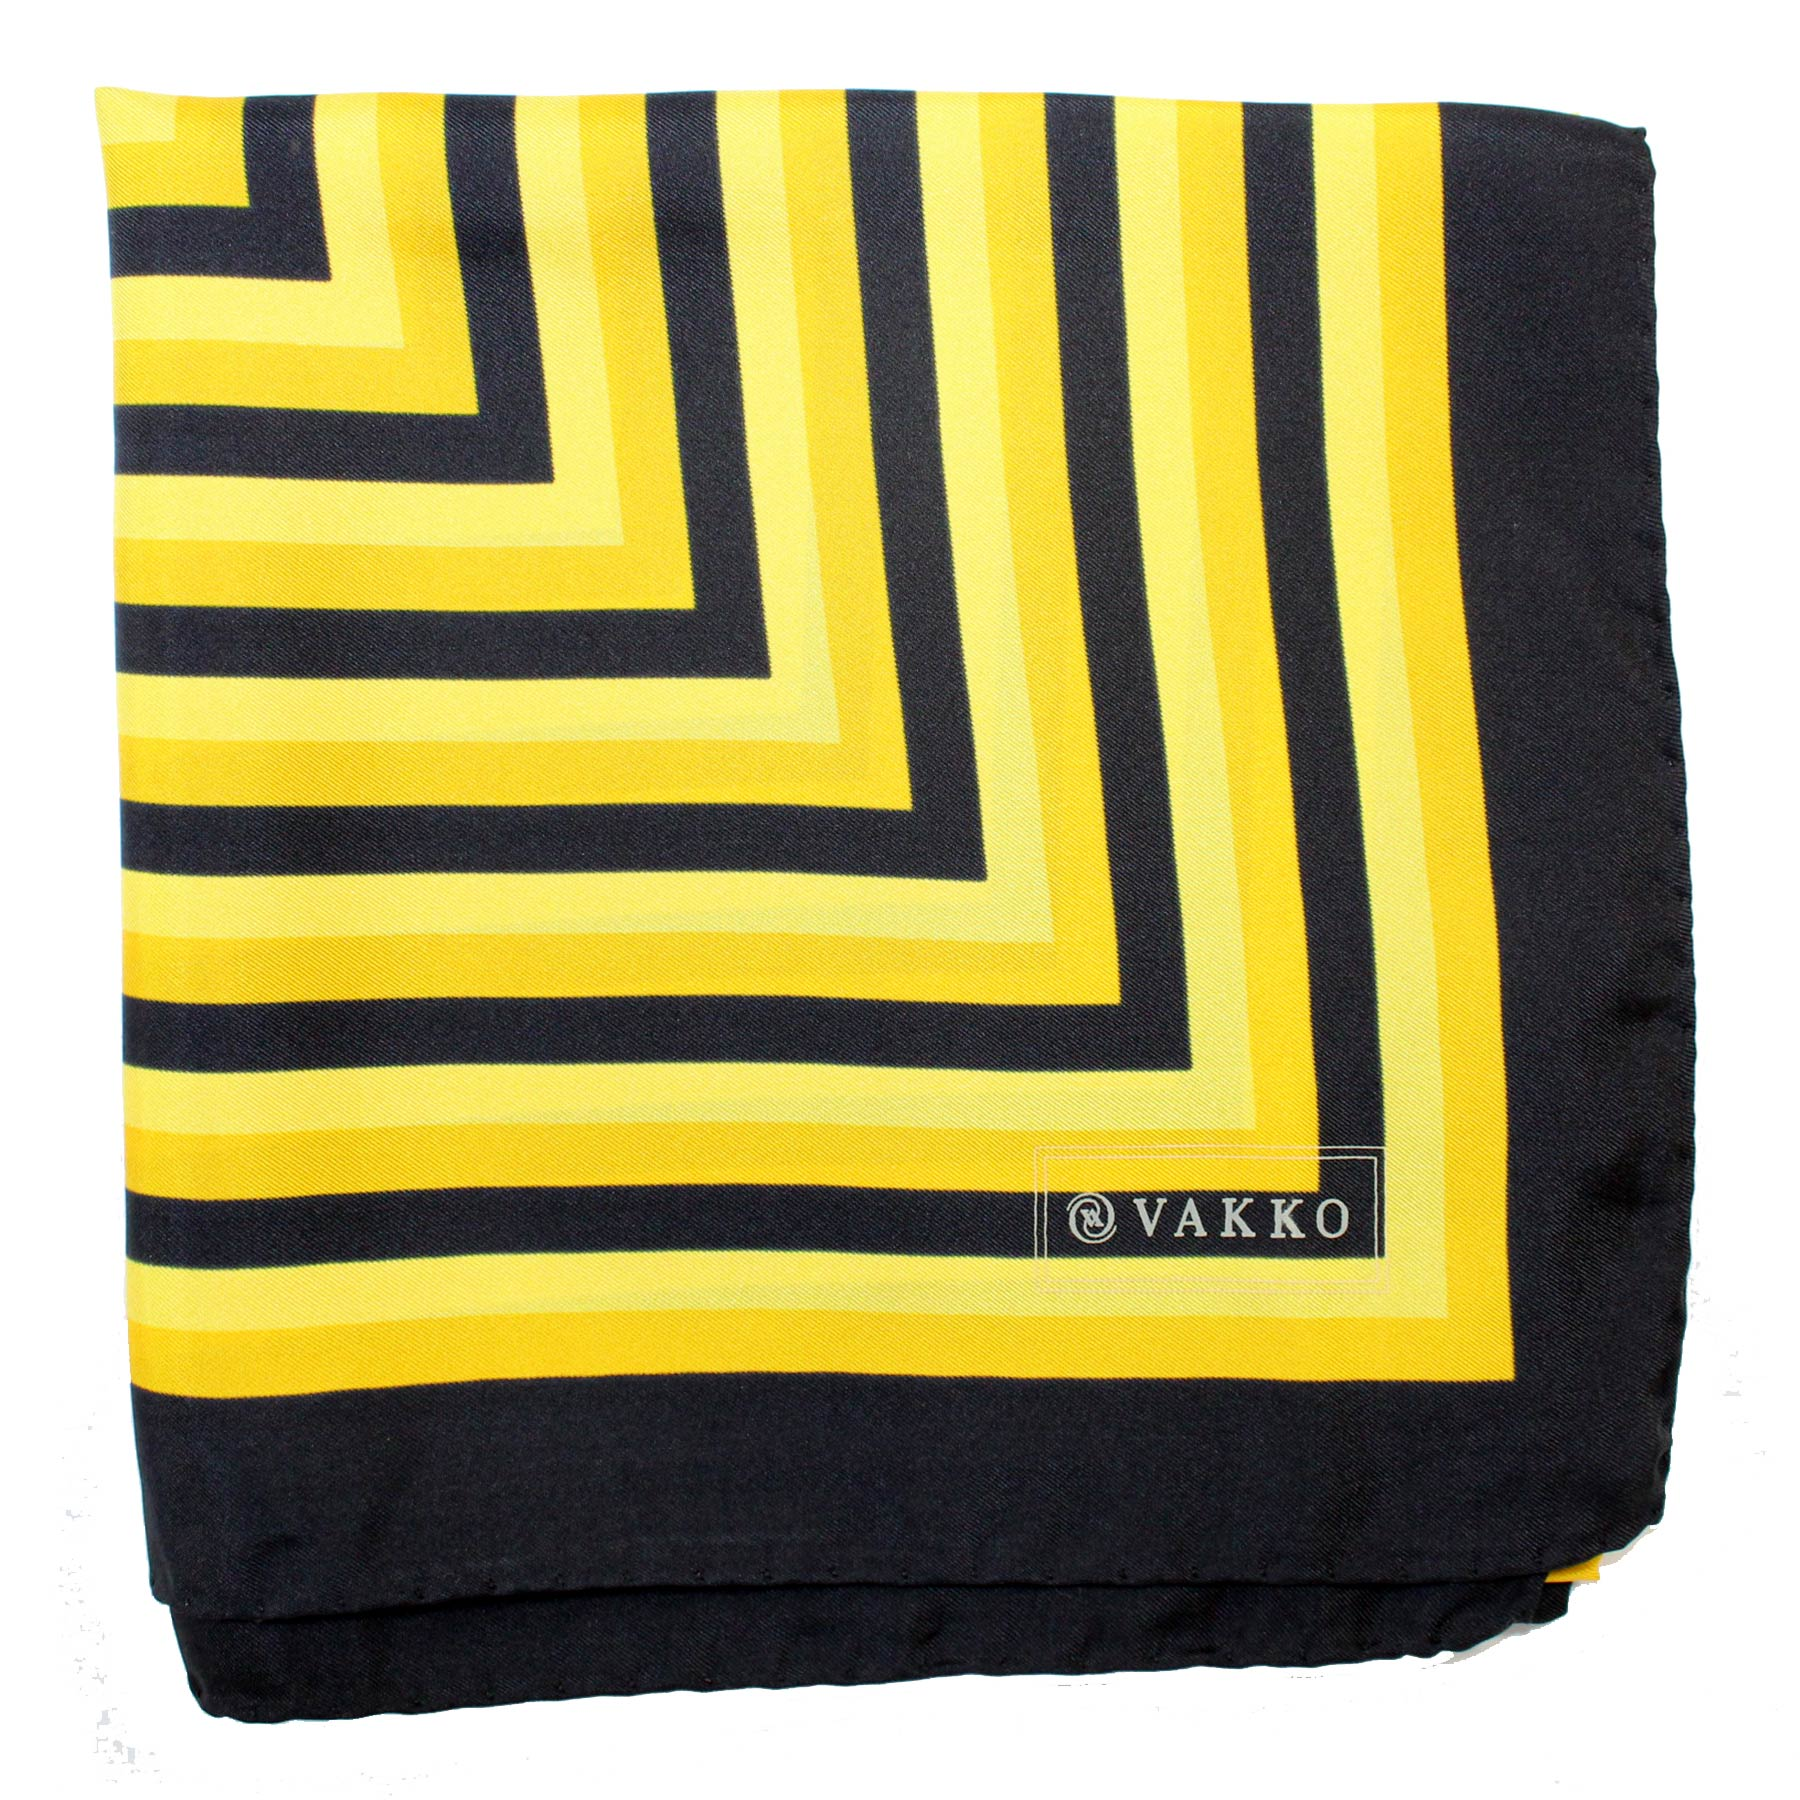 Vakko Scarf Black Bright Orange Stripes Design - Large Silk Square Scarf SALE